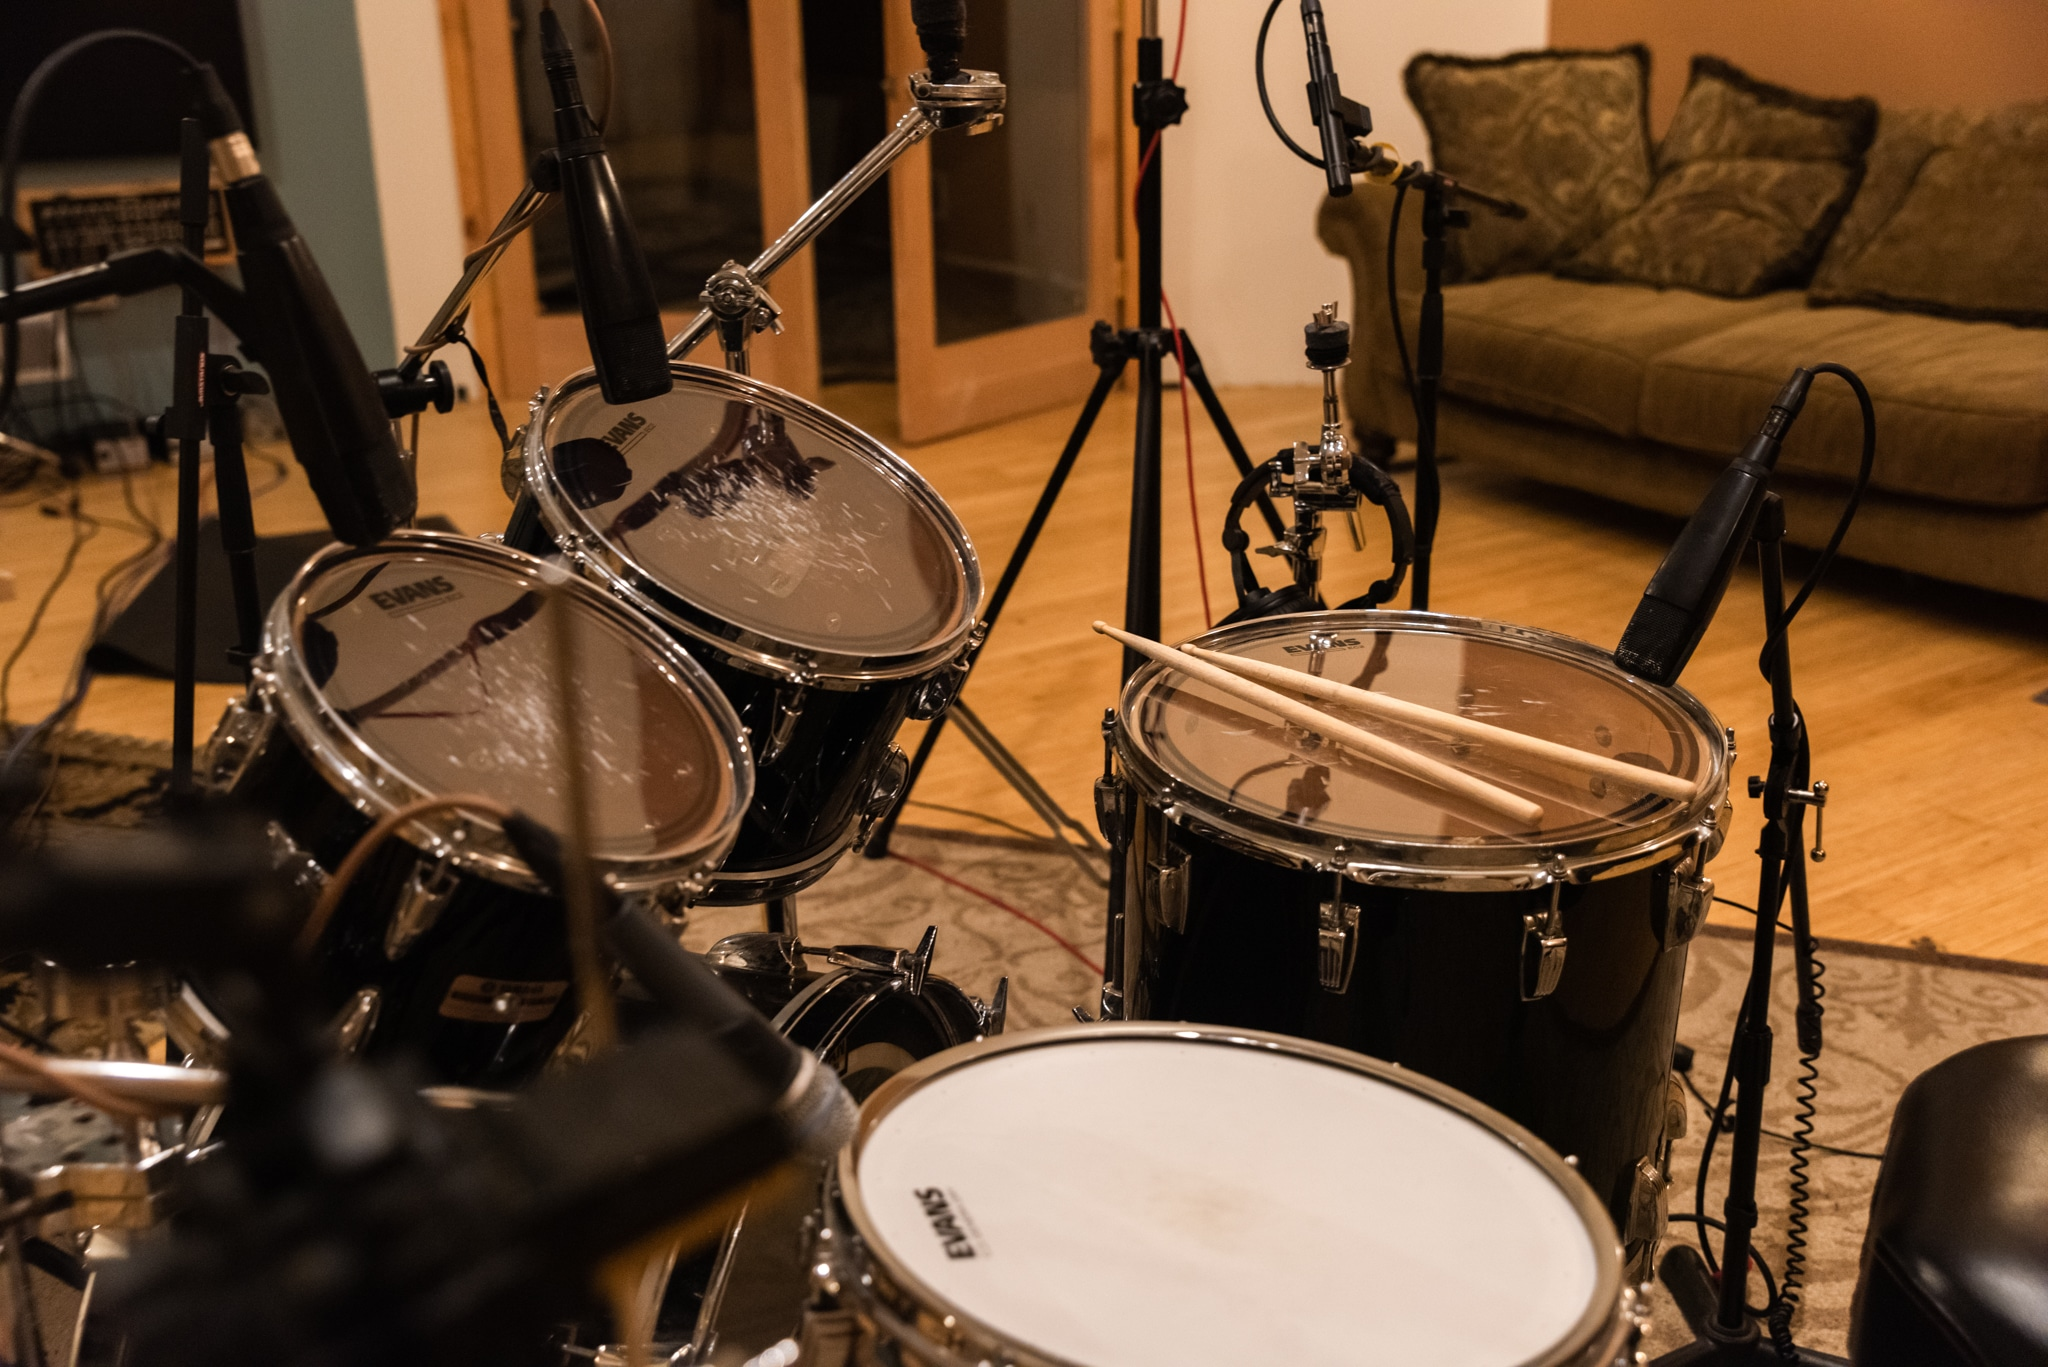 Recording Studio Expands Business Operations Through Zoning Variance